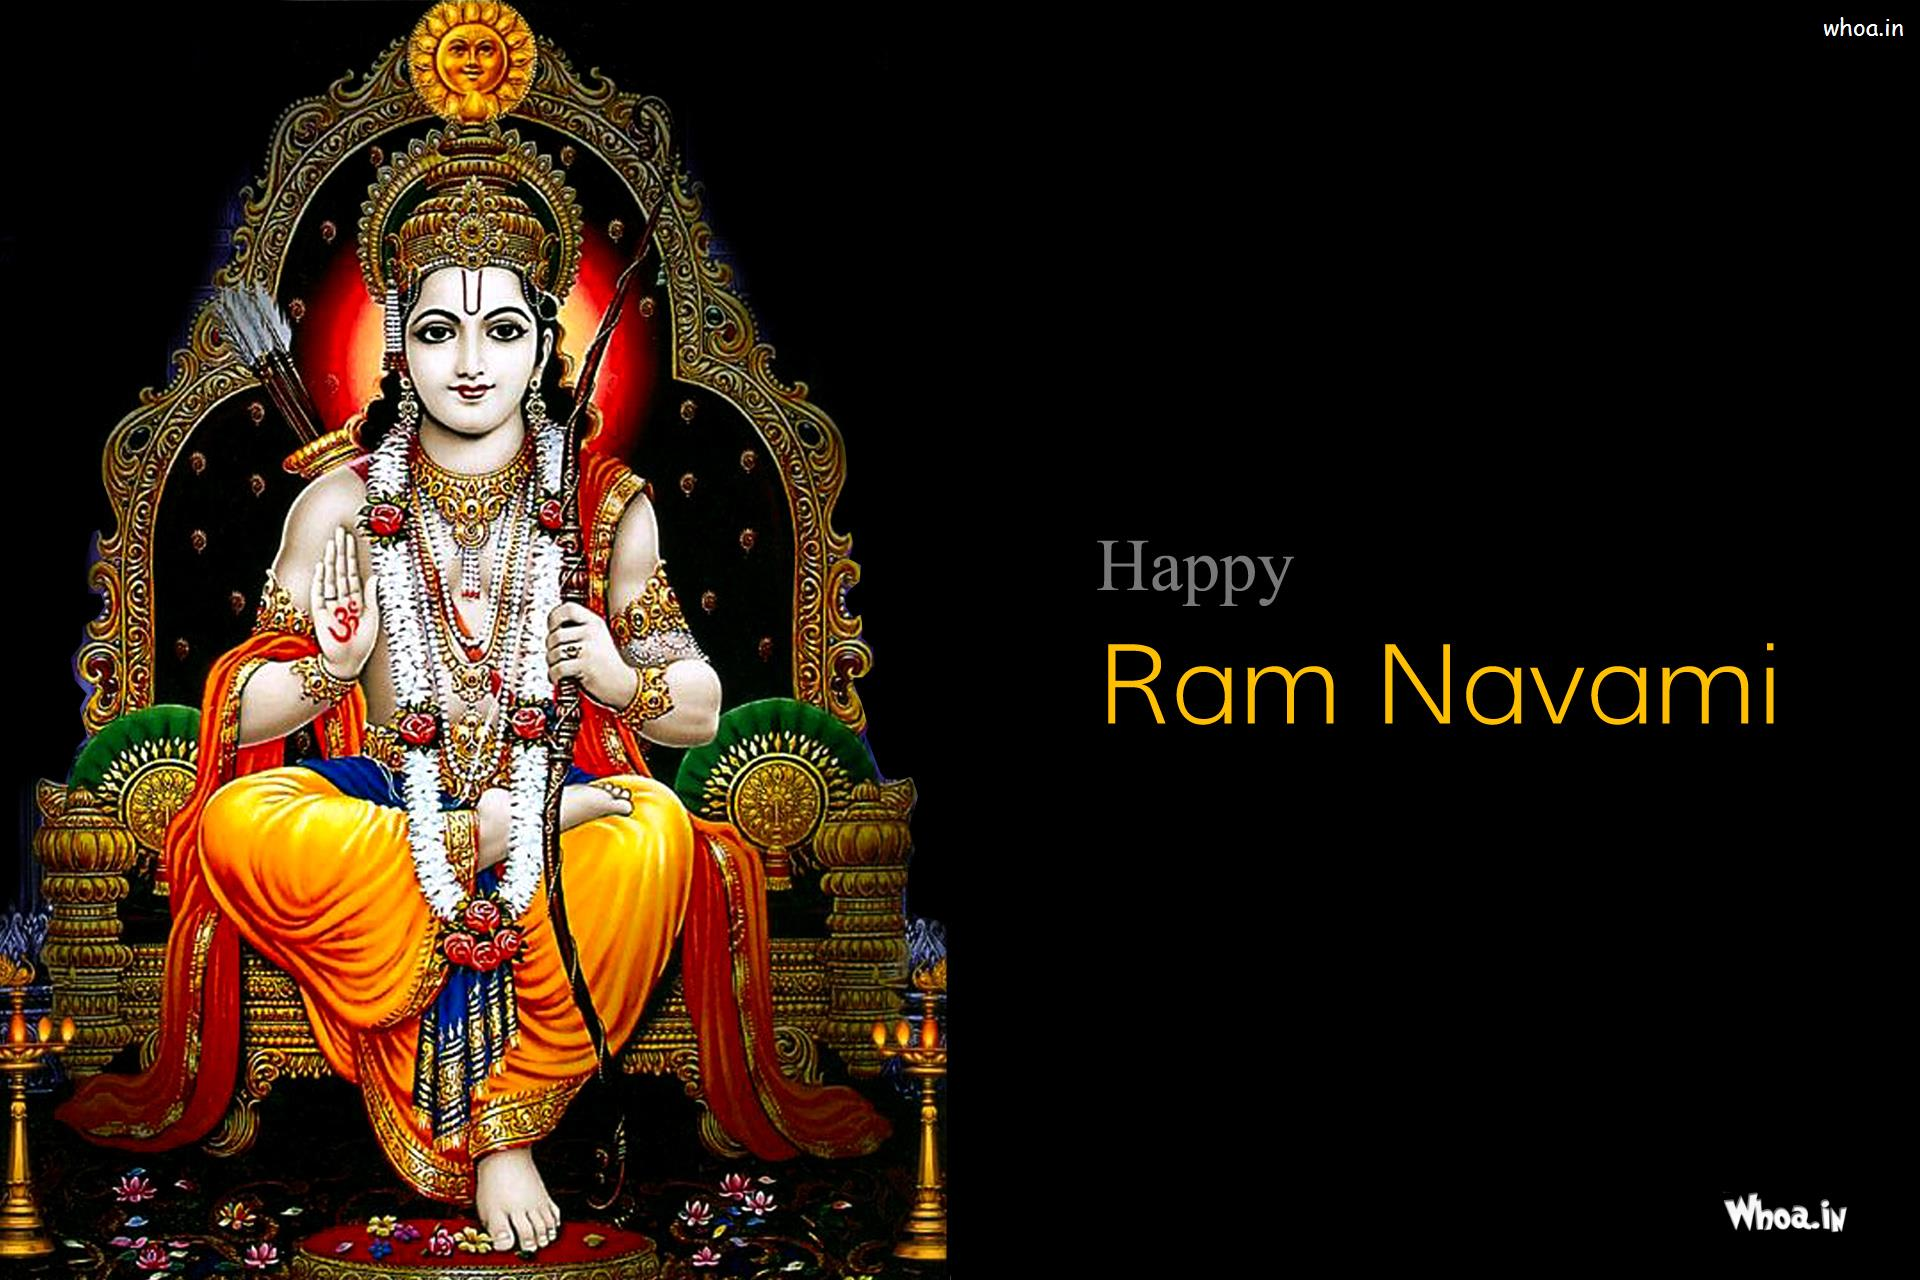 Rama Navami Greetings Hd Wallpaper And Pictures Images